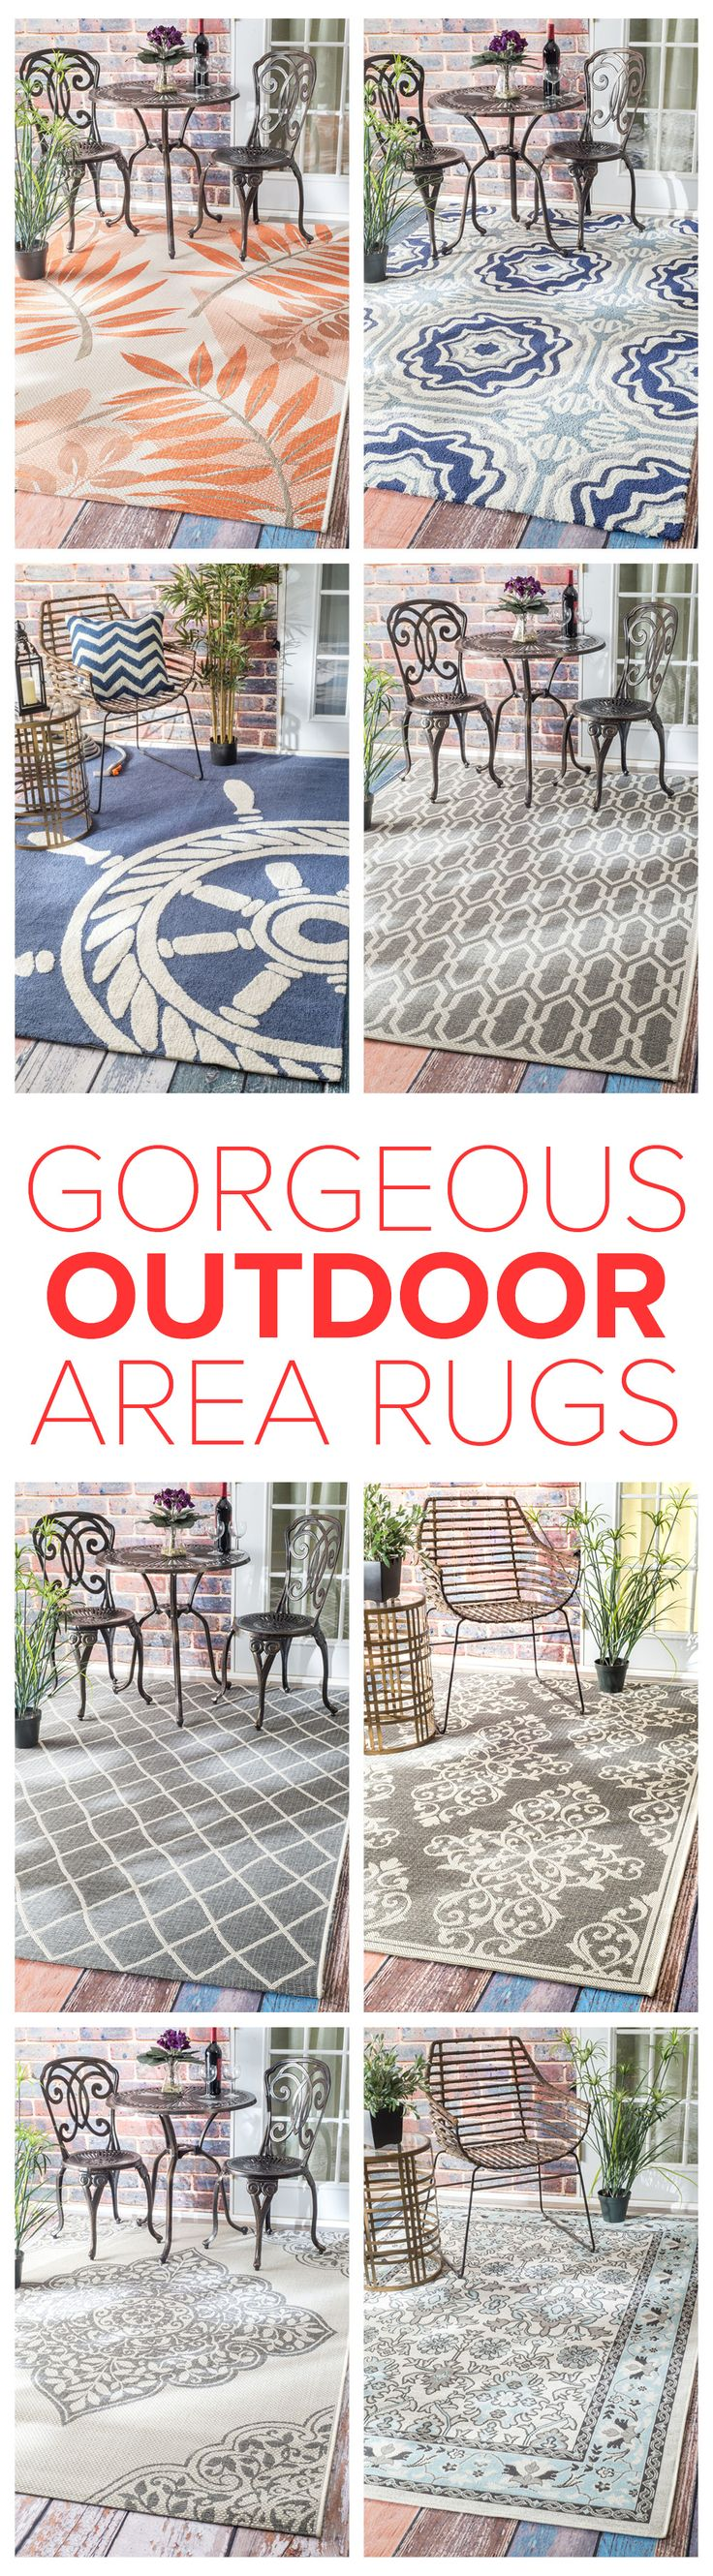 Outdoor rugs are durable, colorful, and fitting for any spaces inside and out! Visit Rugs USA to see a variety of gorgeous and fascinating styles with savings of up to 80% off!